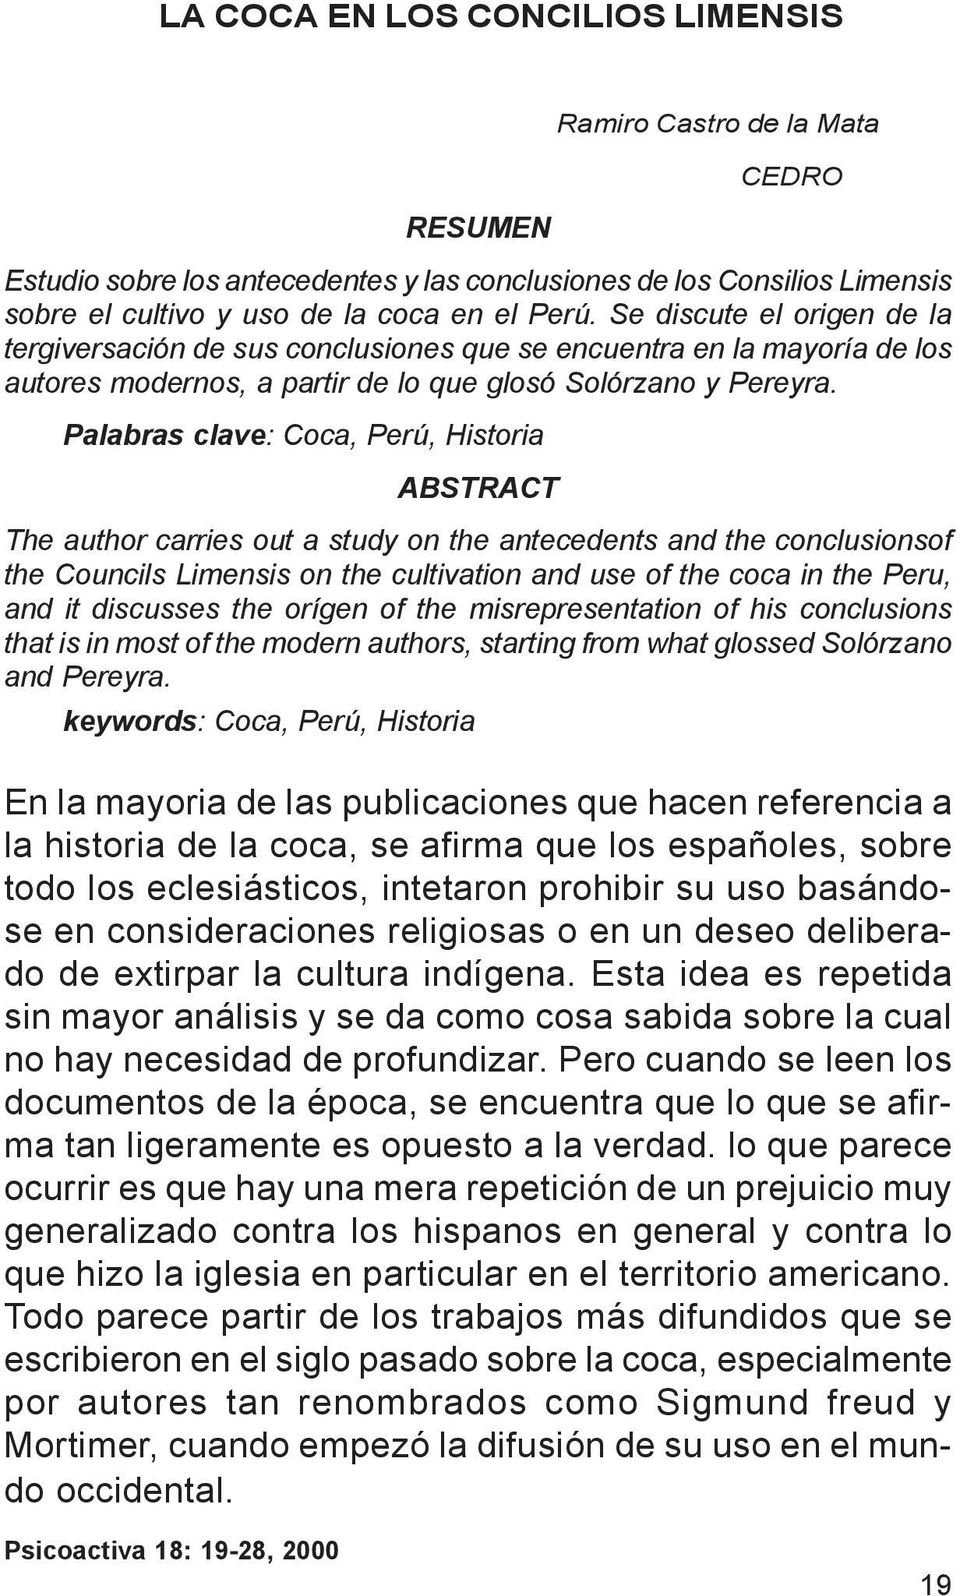 Palabras clave: Coca, Perú, Historia ABSTRACT The author carries out a study on the antecedents and the conclusionsof the Councils Limensis on the cultivation and use of the coca in the Peru, and it